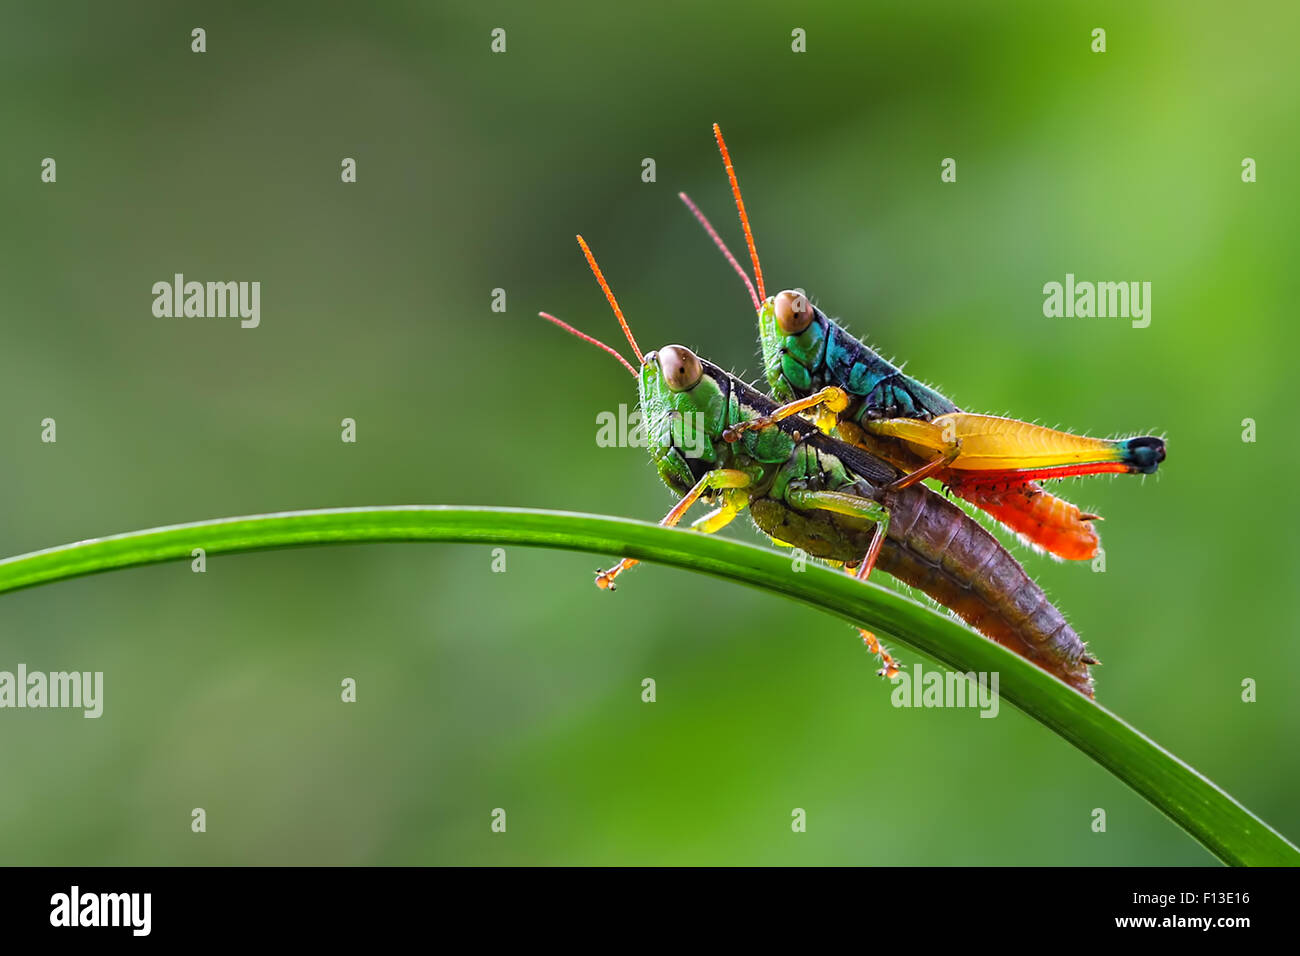 Grasshopper sitting on top of another grasshopper - Stock Image